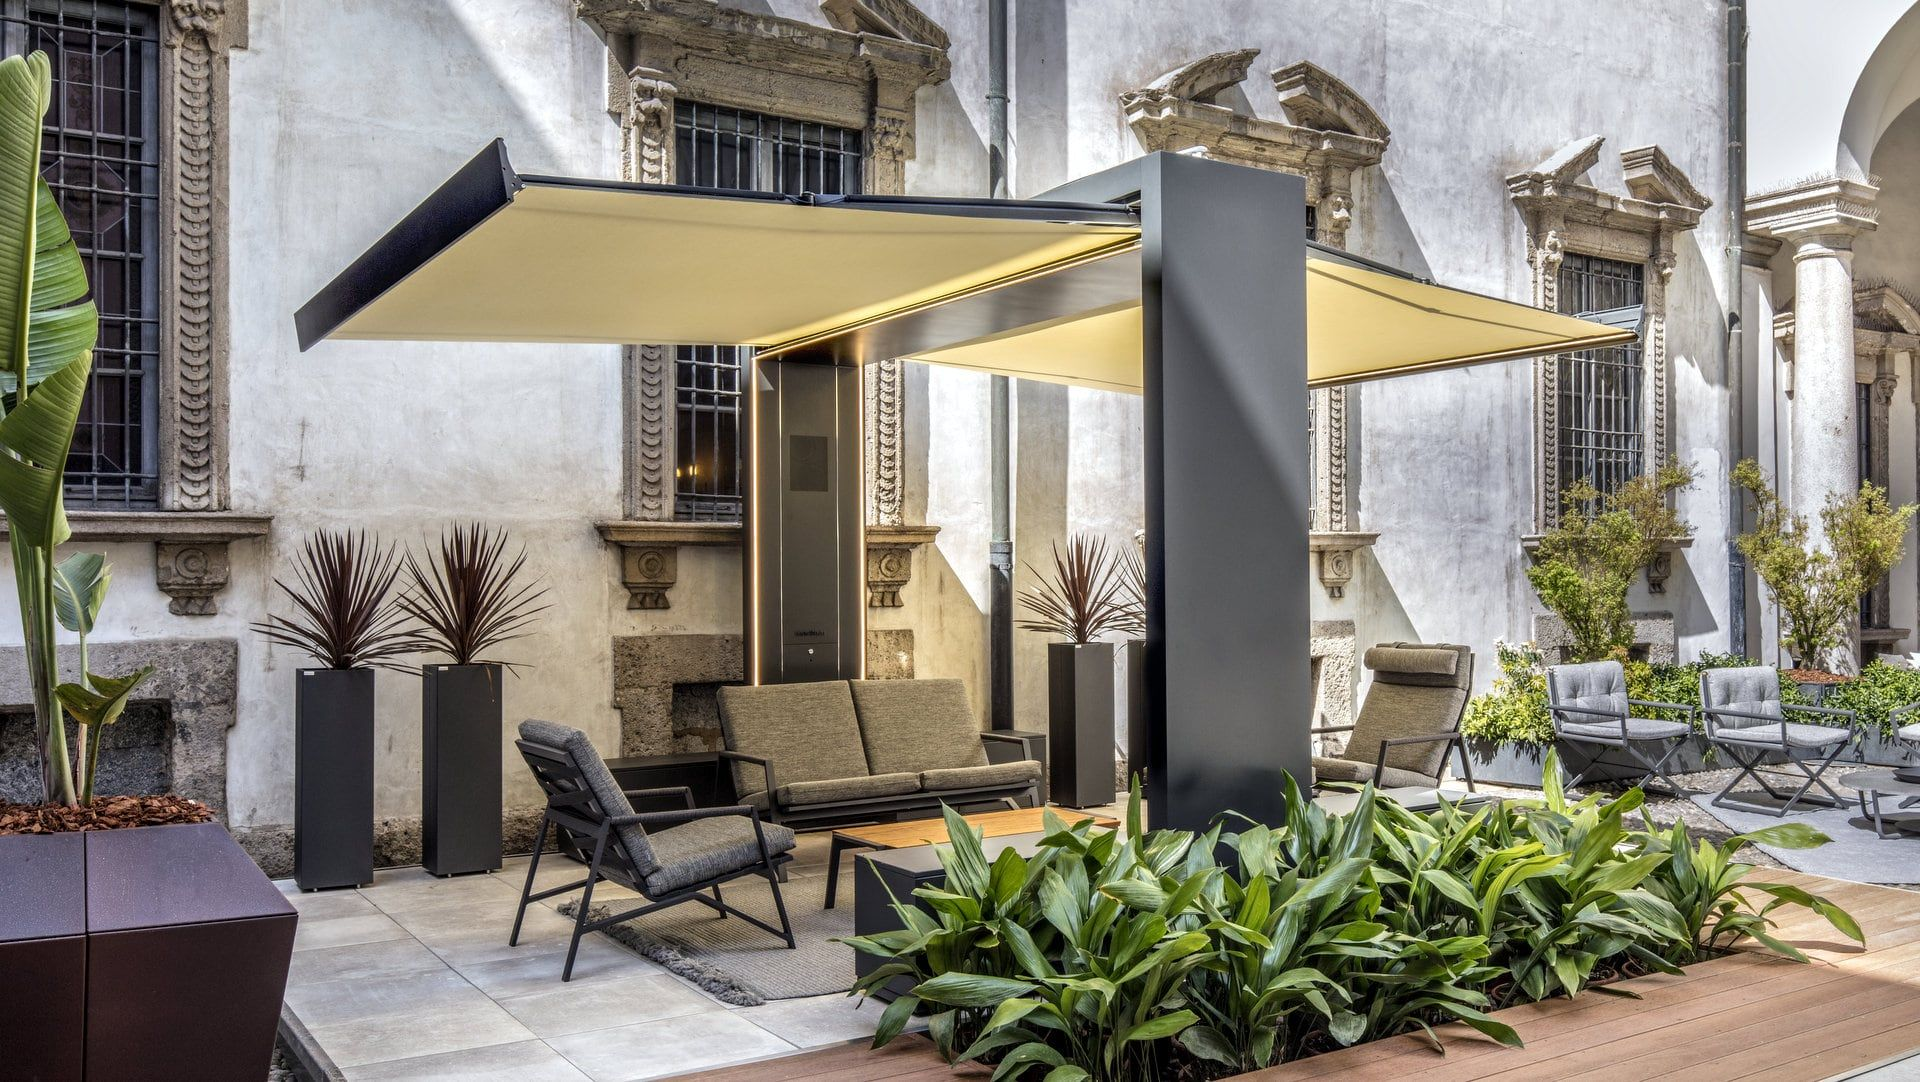 Freestanding Motorized Folding Arm Awning Gate Shade By Unosider Design Nicolas Thomkins In 2020 Patio Shade Modern Design Rooftop Patio